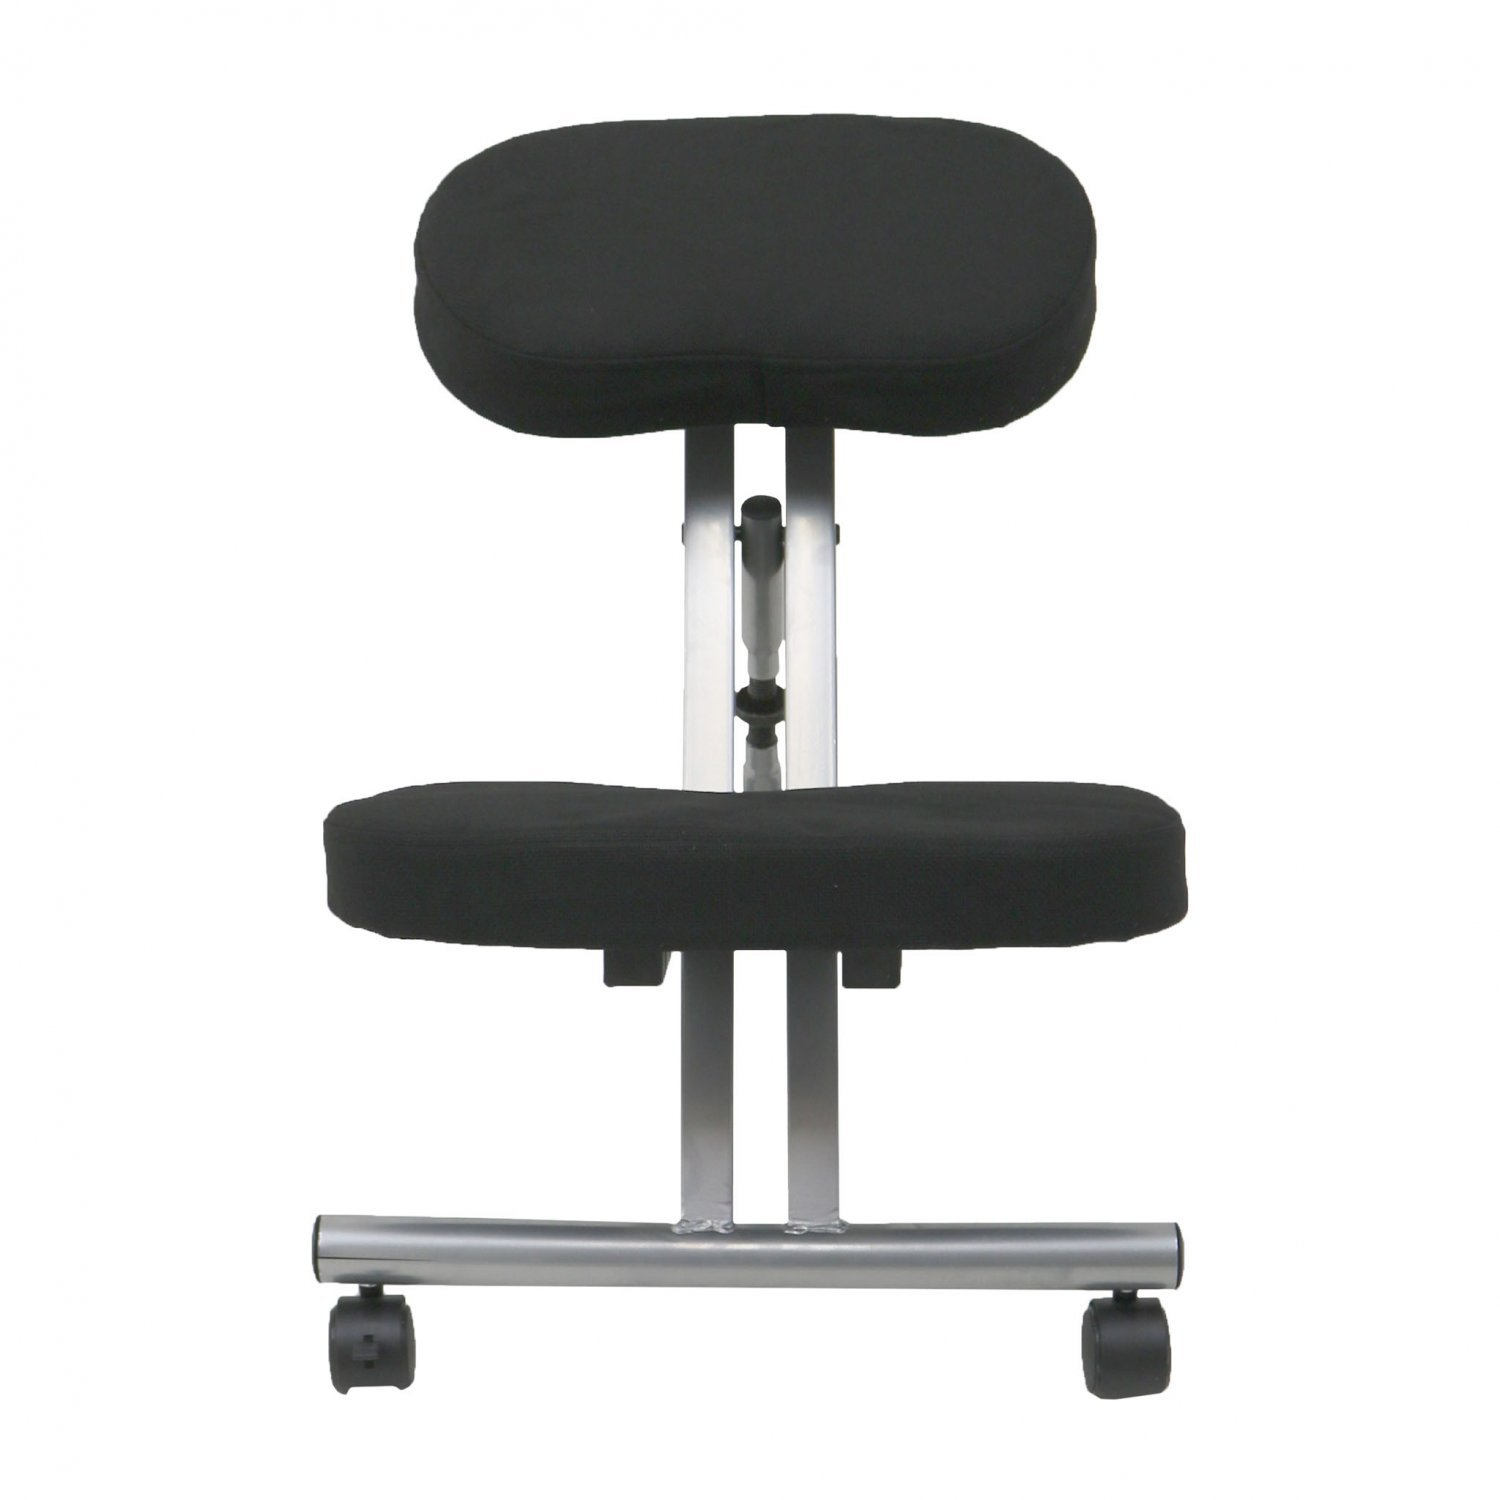 ergonomic posture kneeling chair baby shower bench orthopaedic office stool